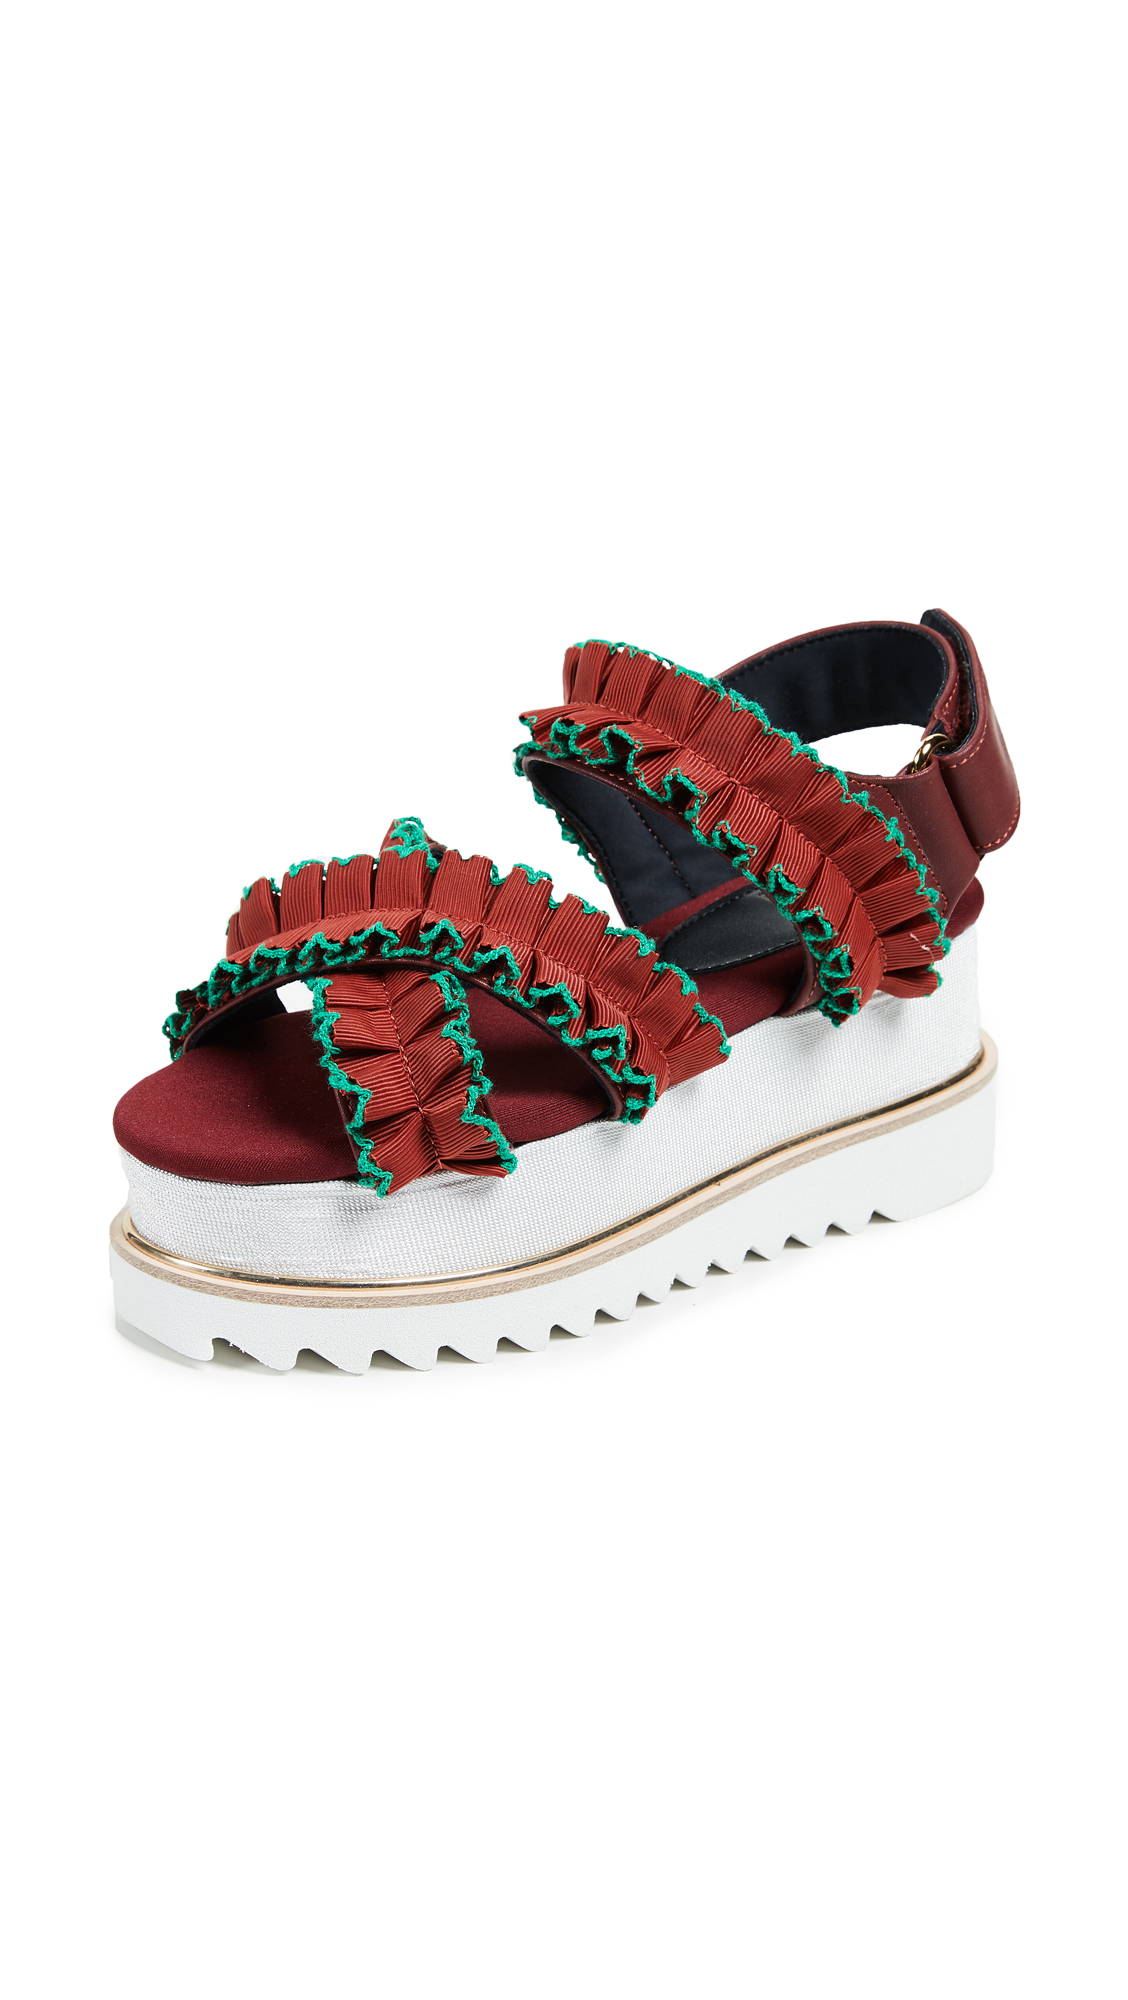 Suecomma Bonnie Ruffle Detailed Platform Sandals - Oren